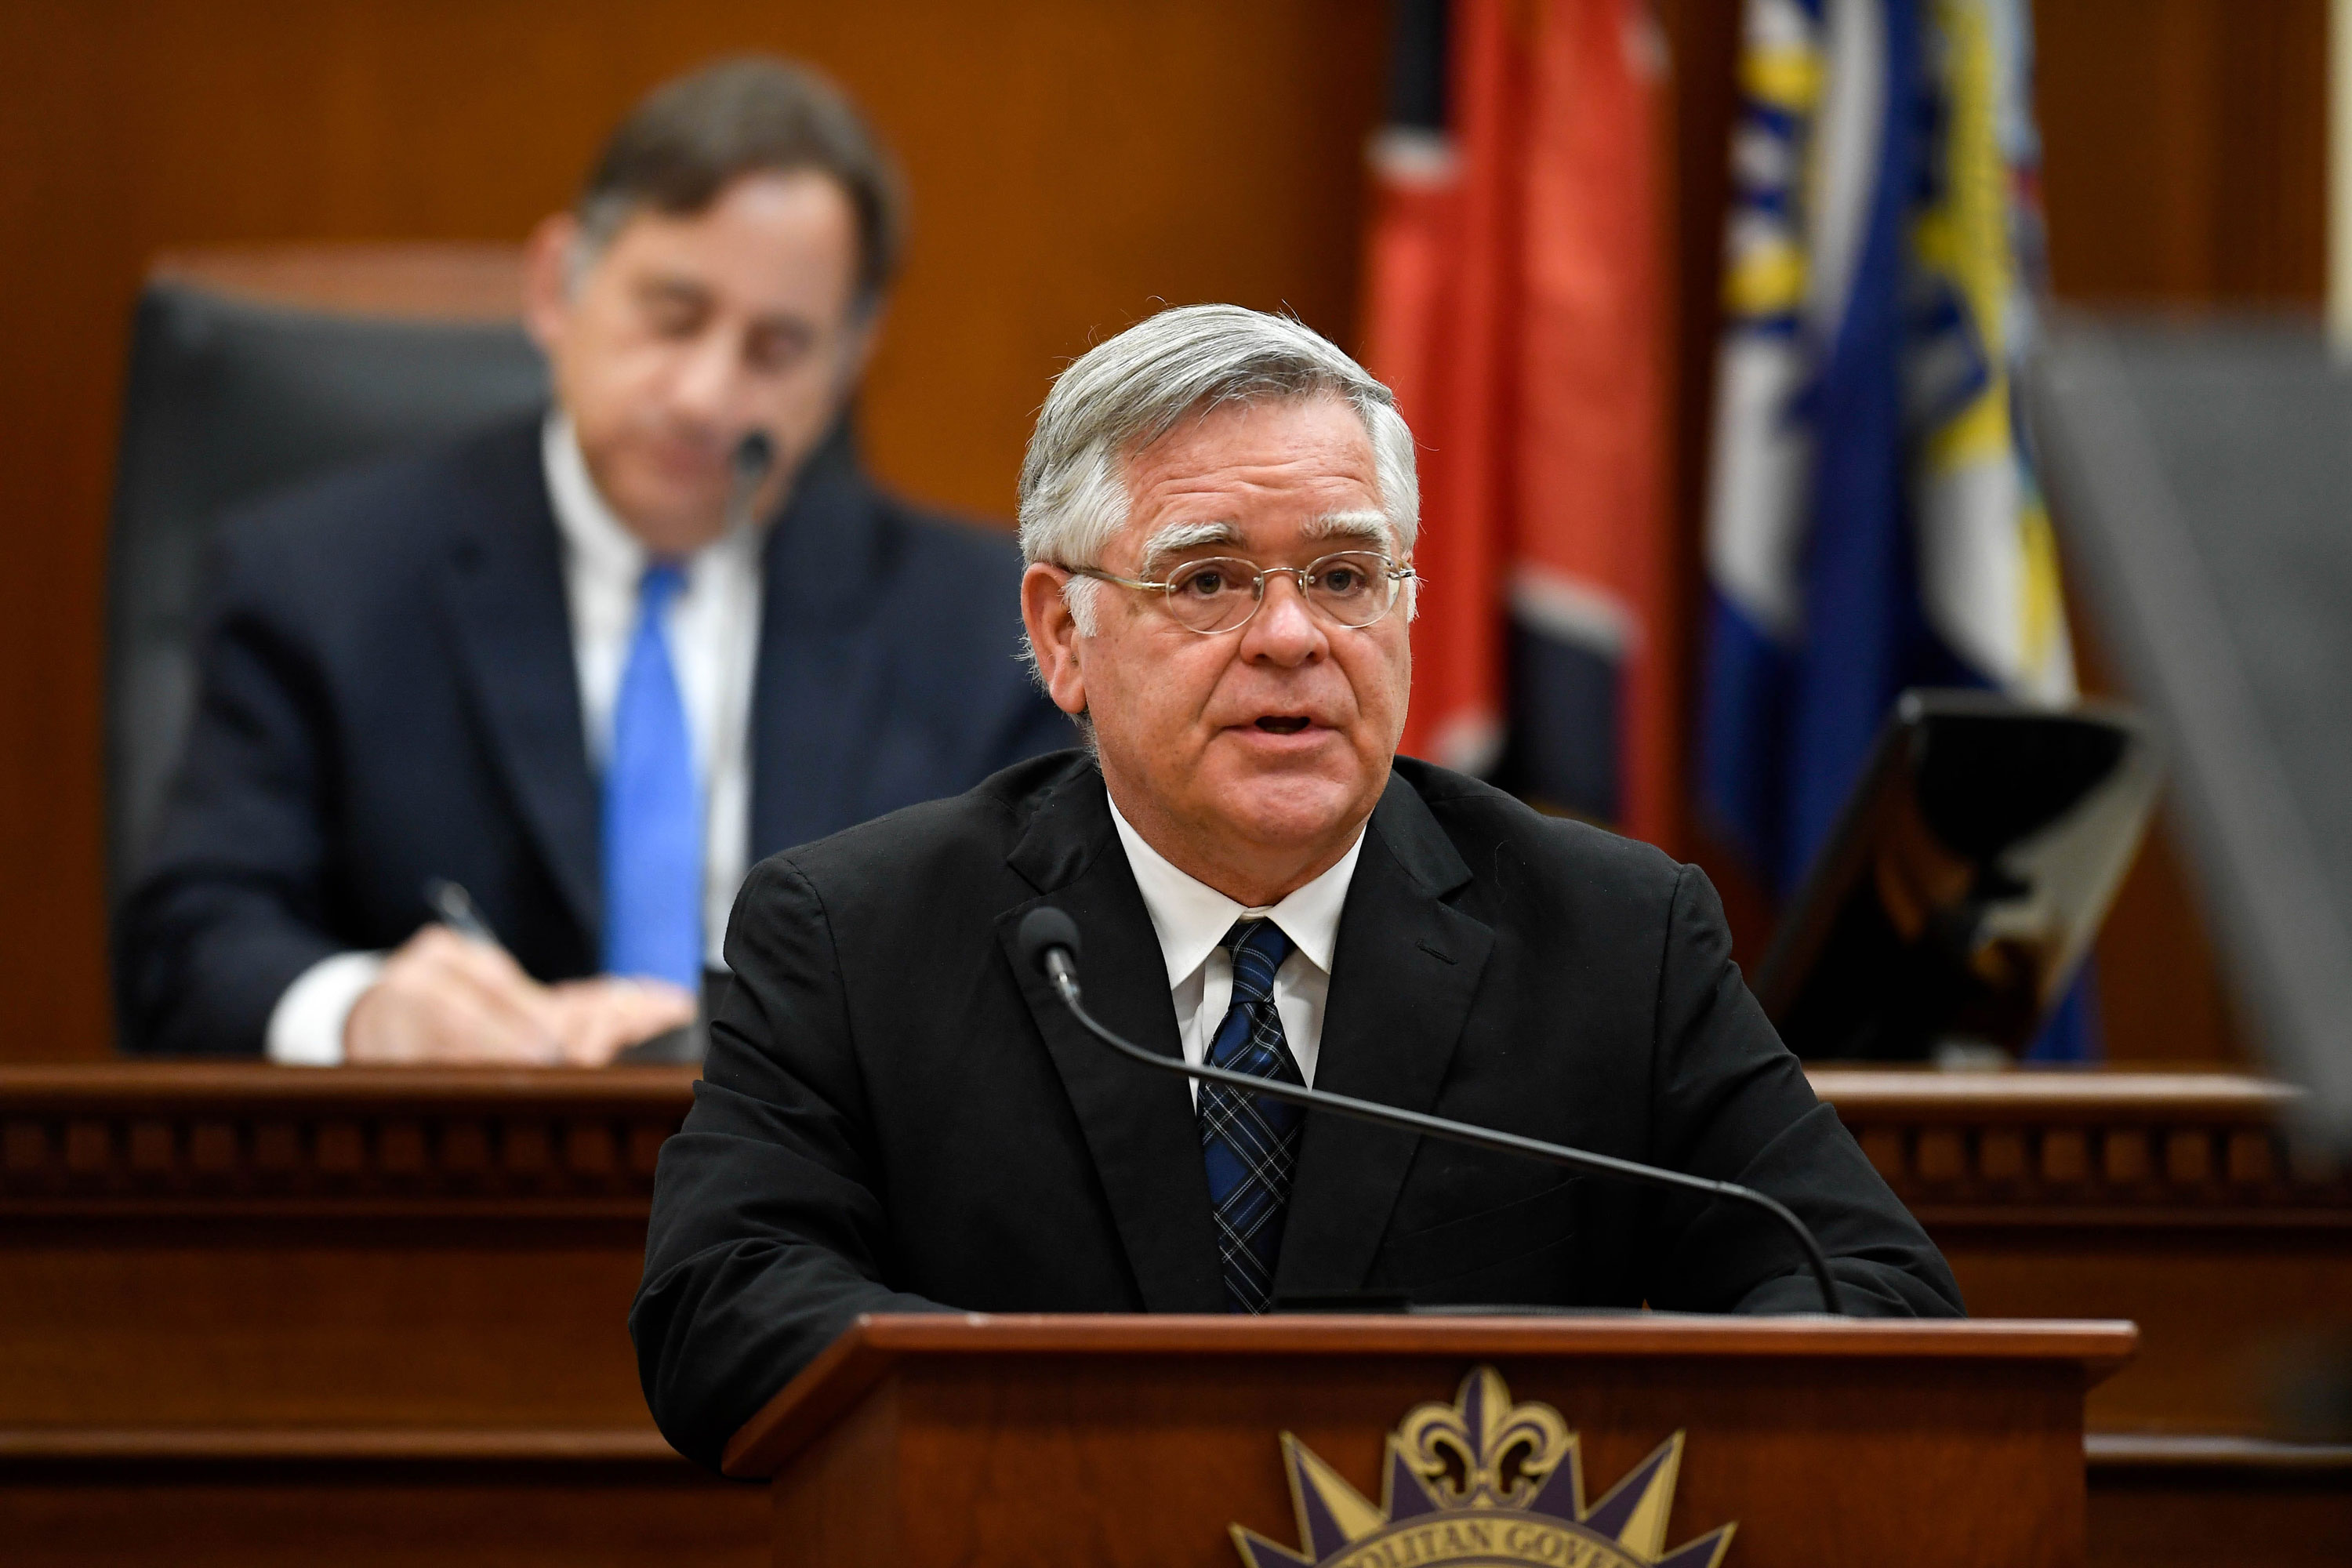 Nashville Mayor John Cooper delivers the State of Metro Address from the Council Chambers at the Metro Courthouse on March 31 in Nashville.